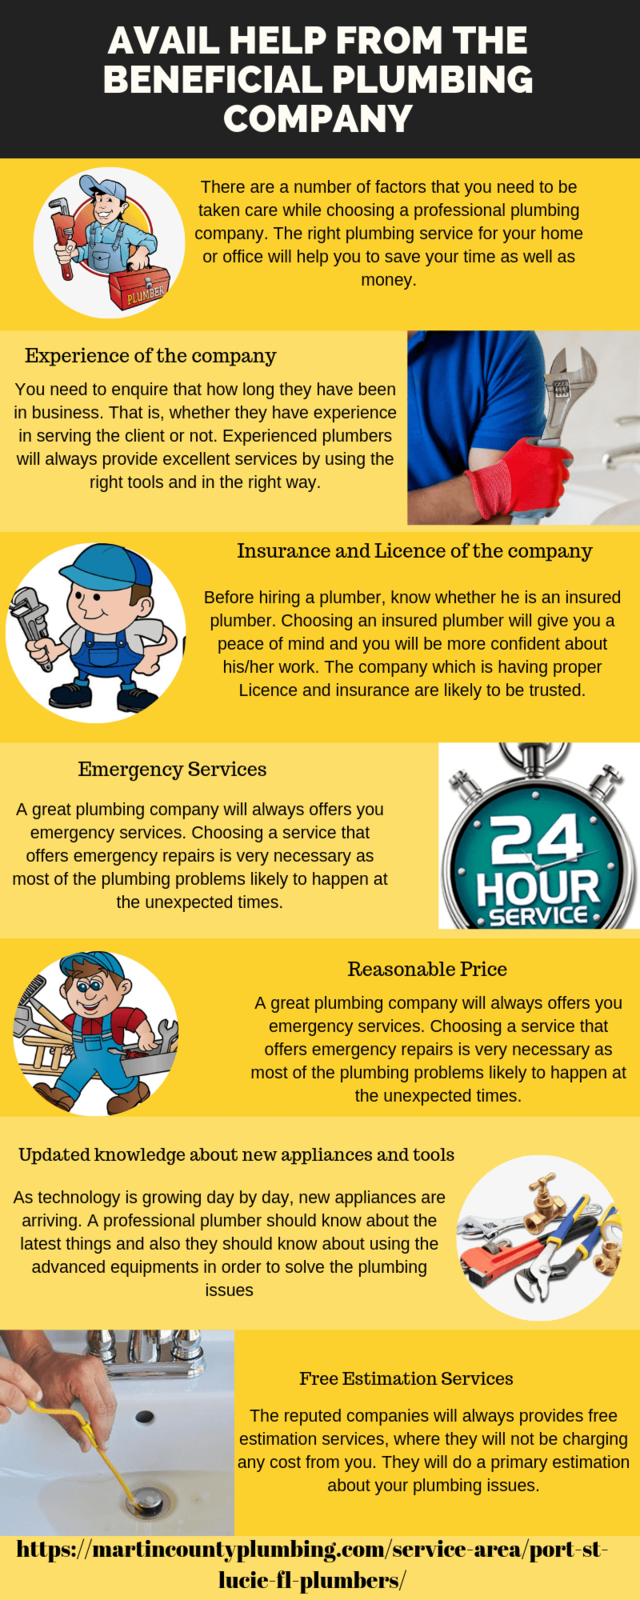 Avail help from the beneficial plumbing company